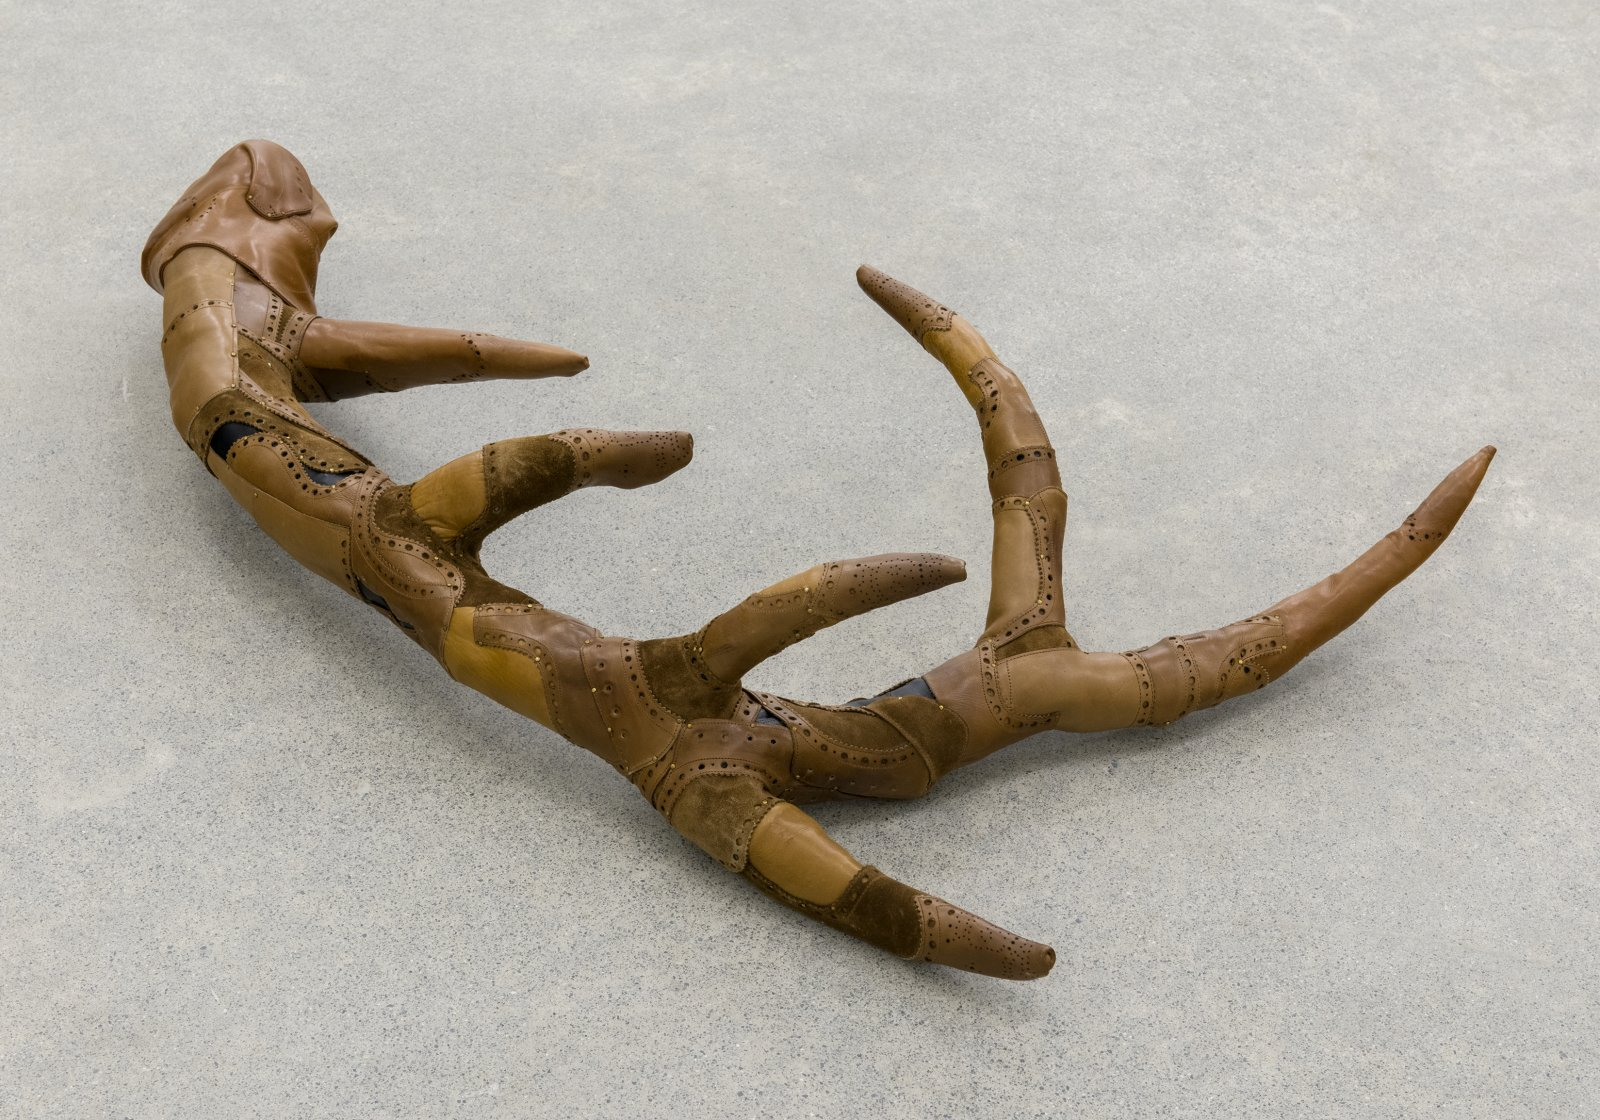 Brian Jungen, Antler Study (elk), 2007, leather shoes, rubber, brass tacks, 37 x 21 x 5 in. (93 x 53 x 13 cm)